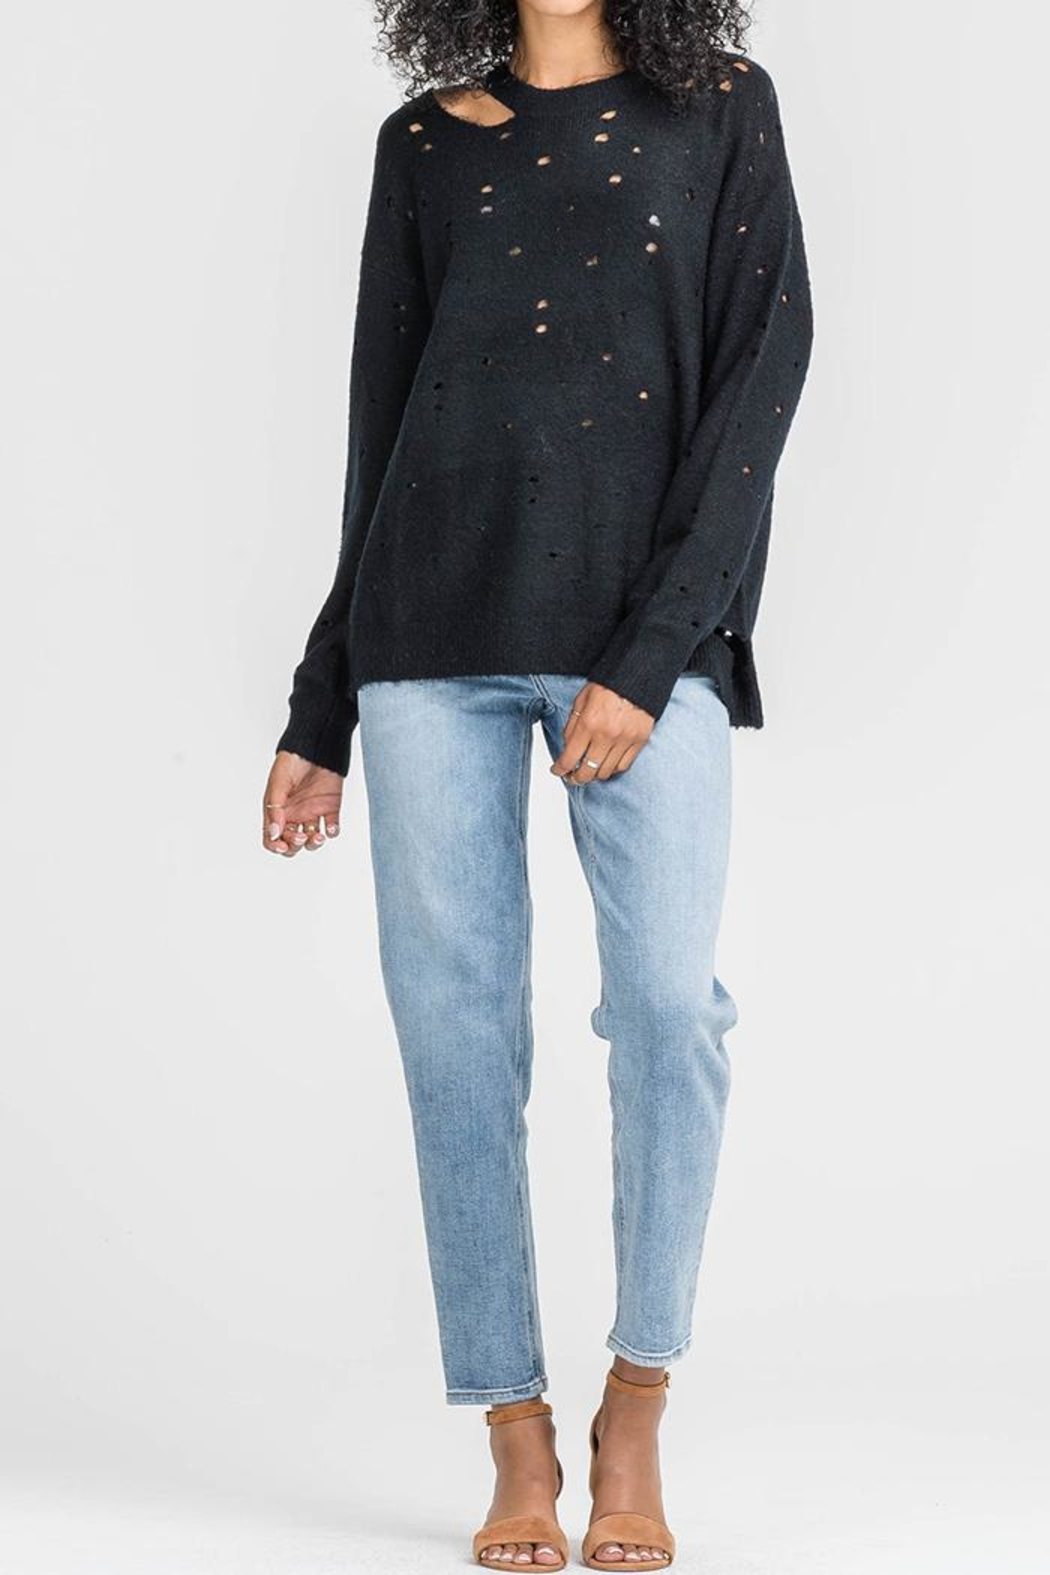 ASTR Distressed Sweater - Front Cropped Image